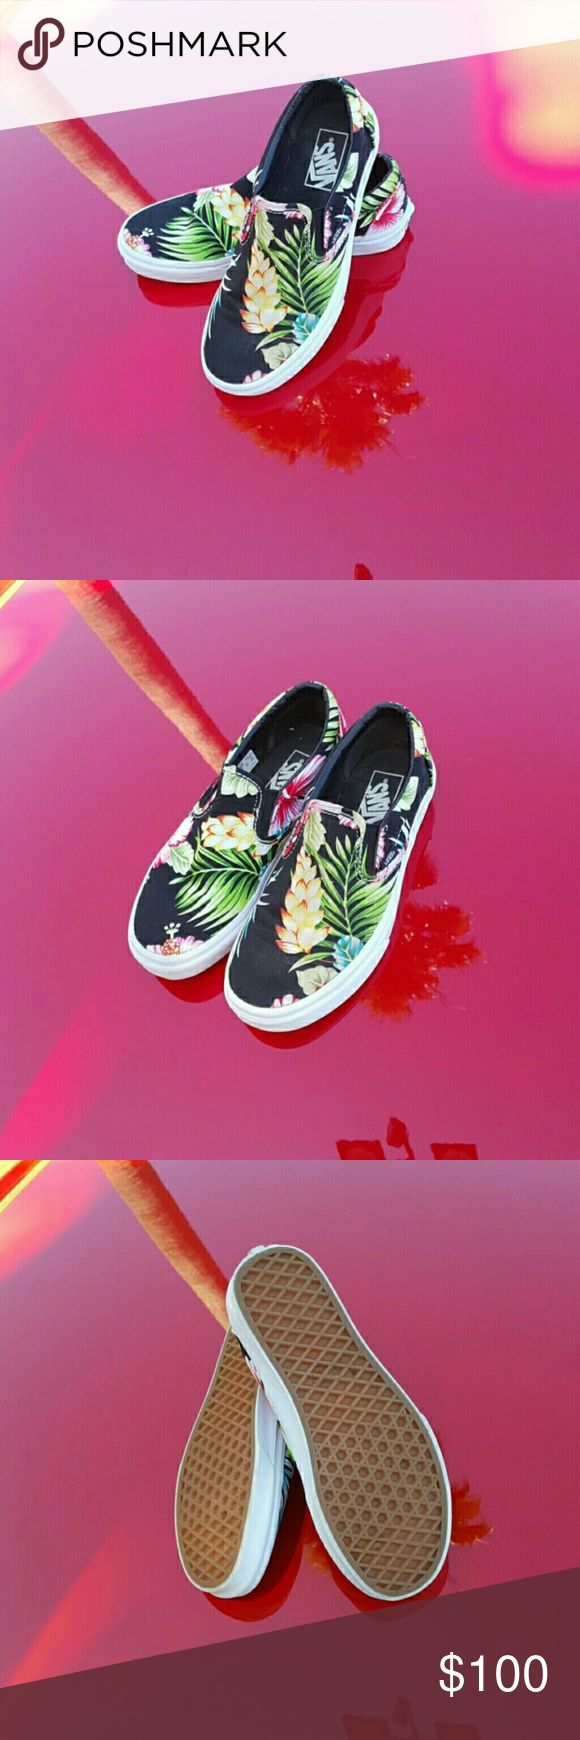 Tropical Vans Slip-On Shoes  Women's size 7.5, Men's size 6 Brand new condition! Black background with bright tropical pattern. No trades. Reasonable offers accepted! Vans Shoes Sneakers